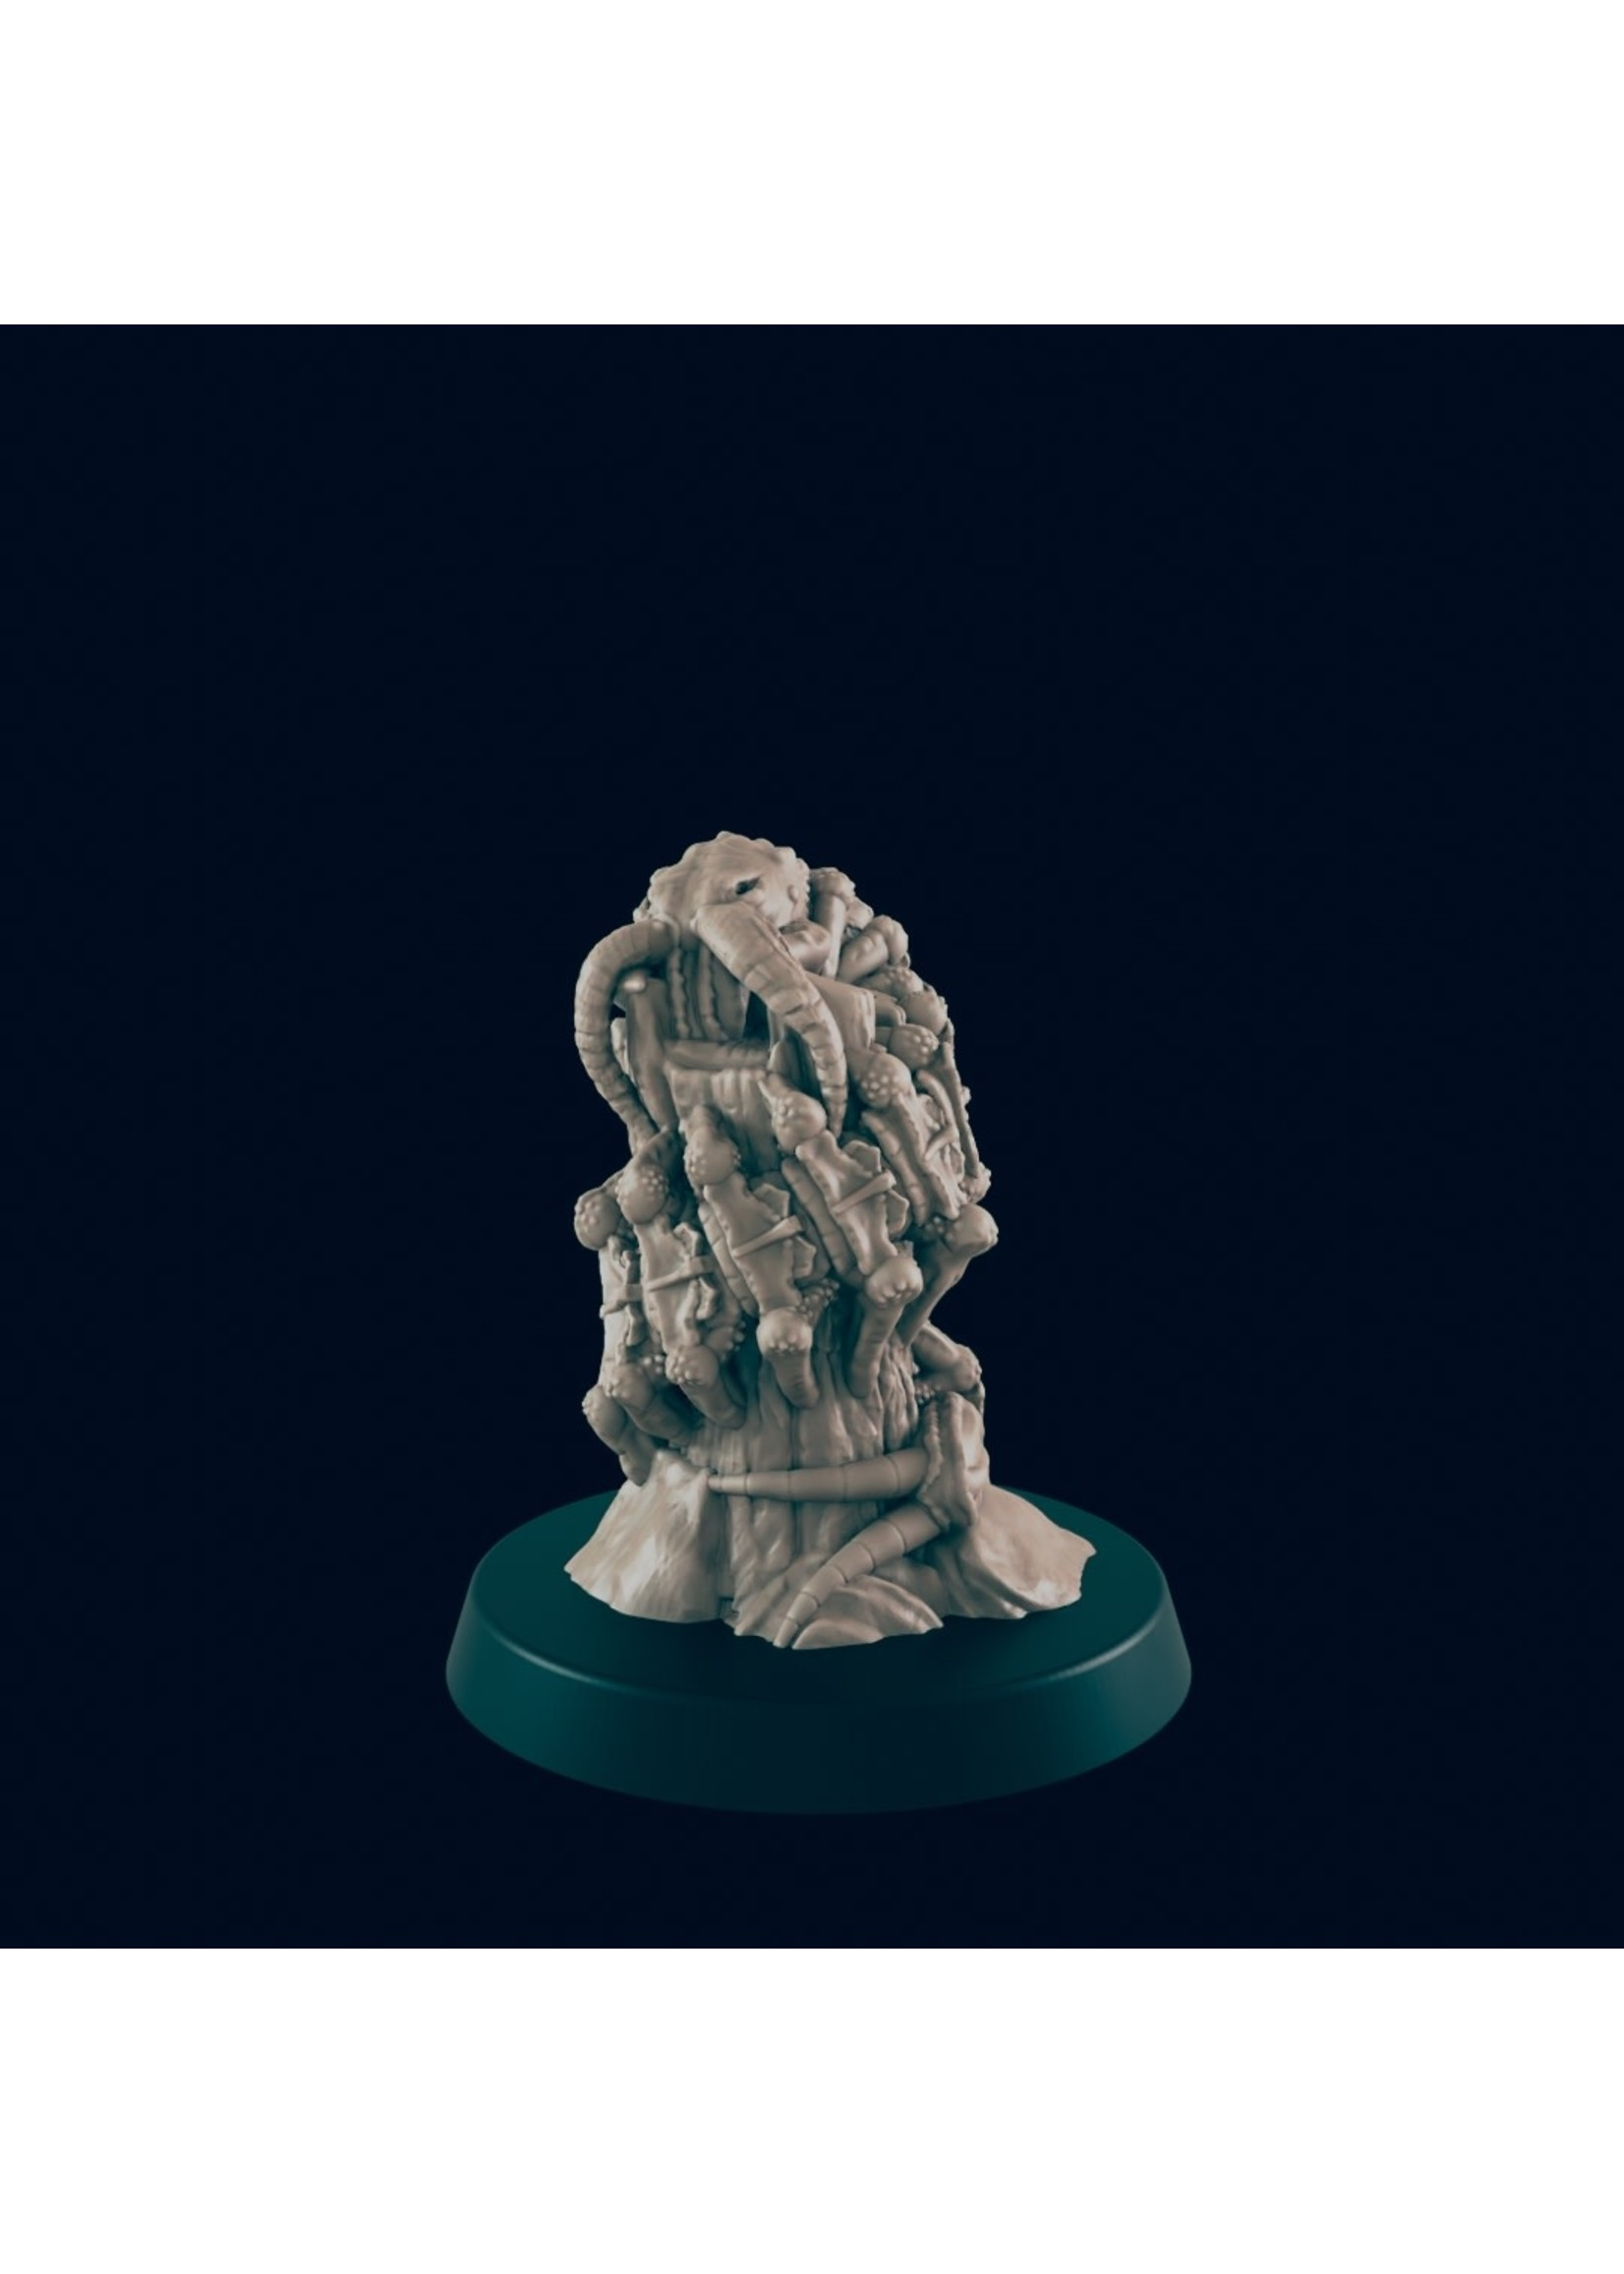 3D Printed Miniature - Giant Centipede - Dungeons & Dragons - Beasts and Baddies KS